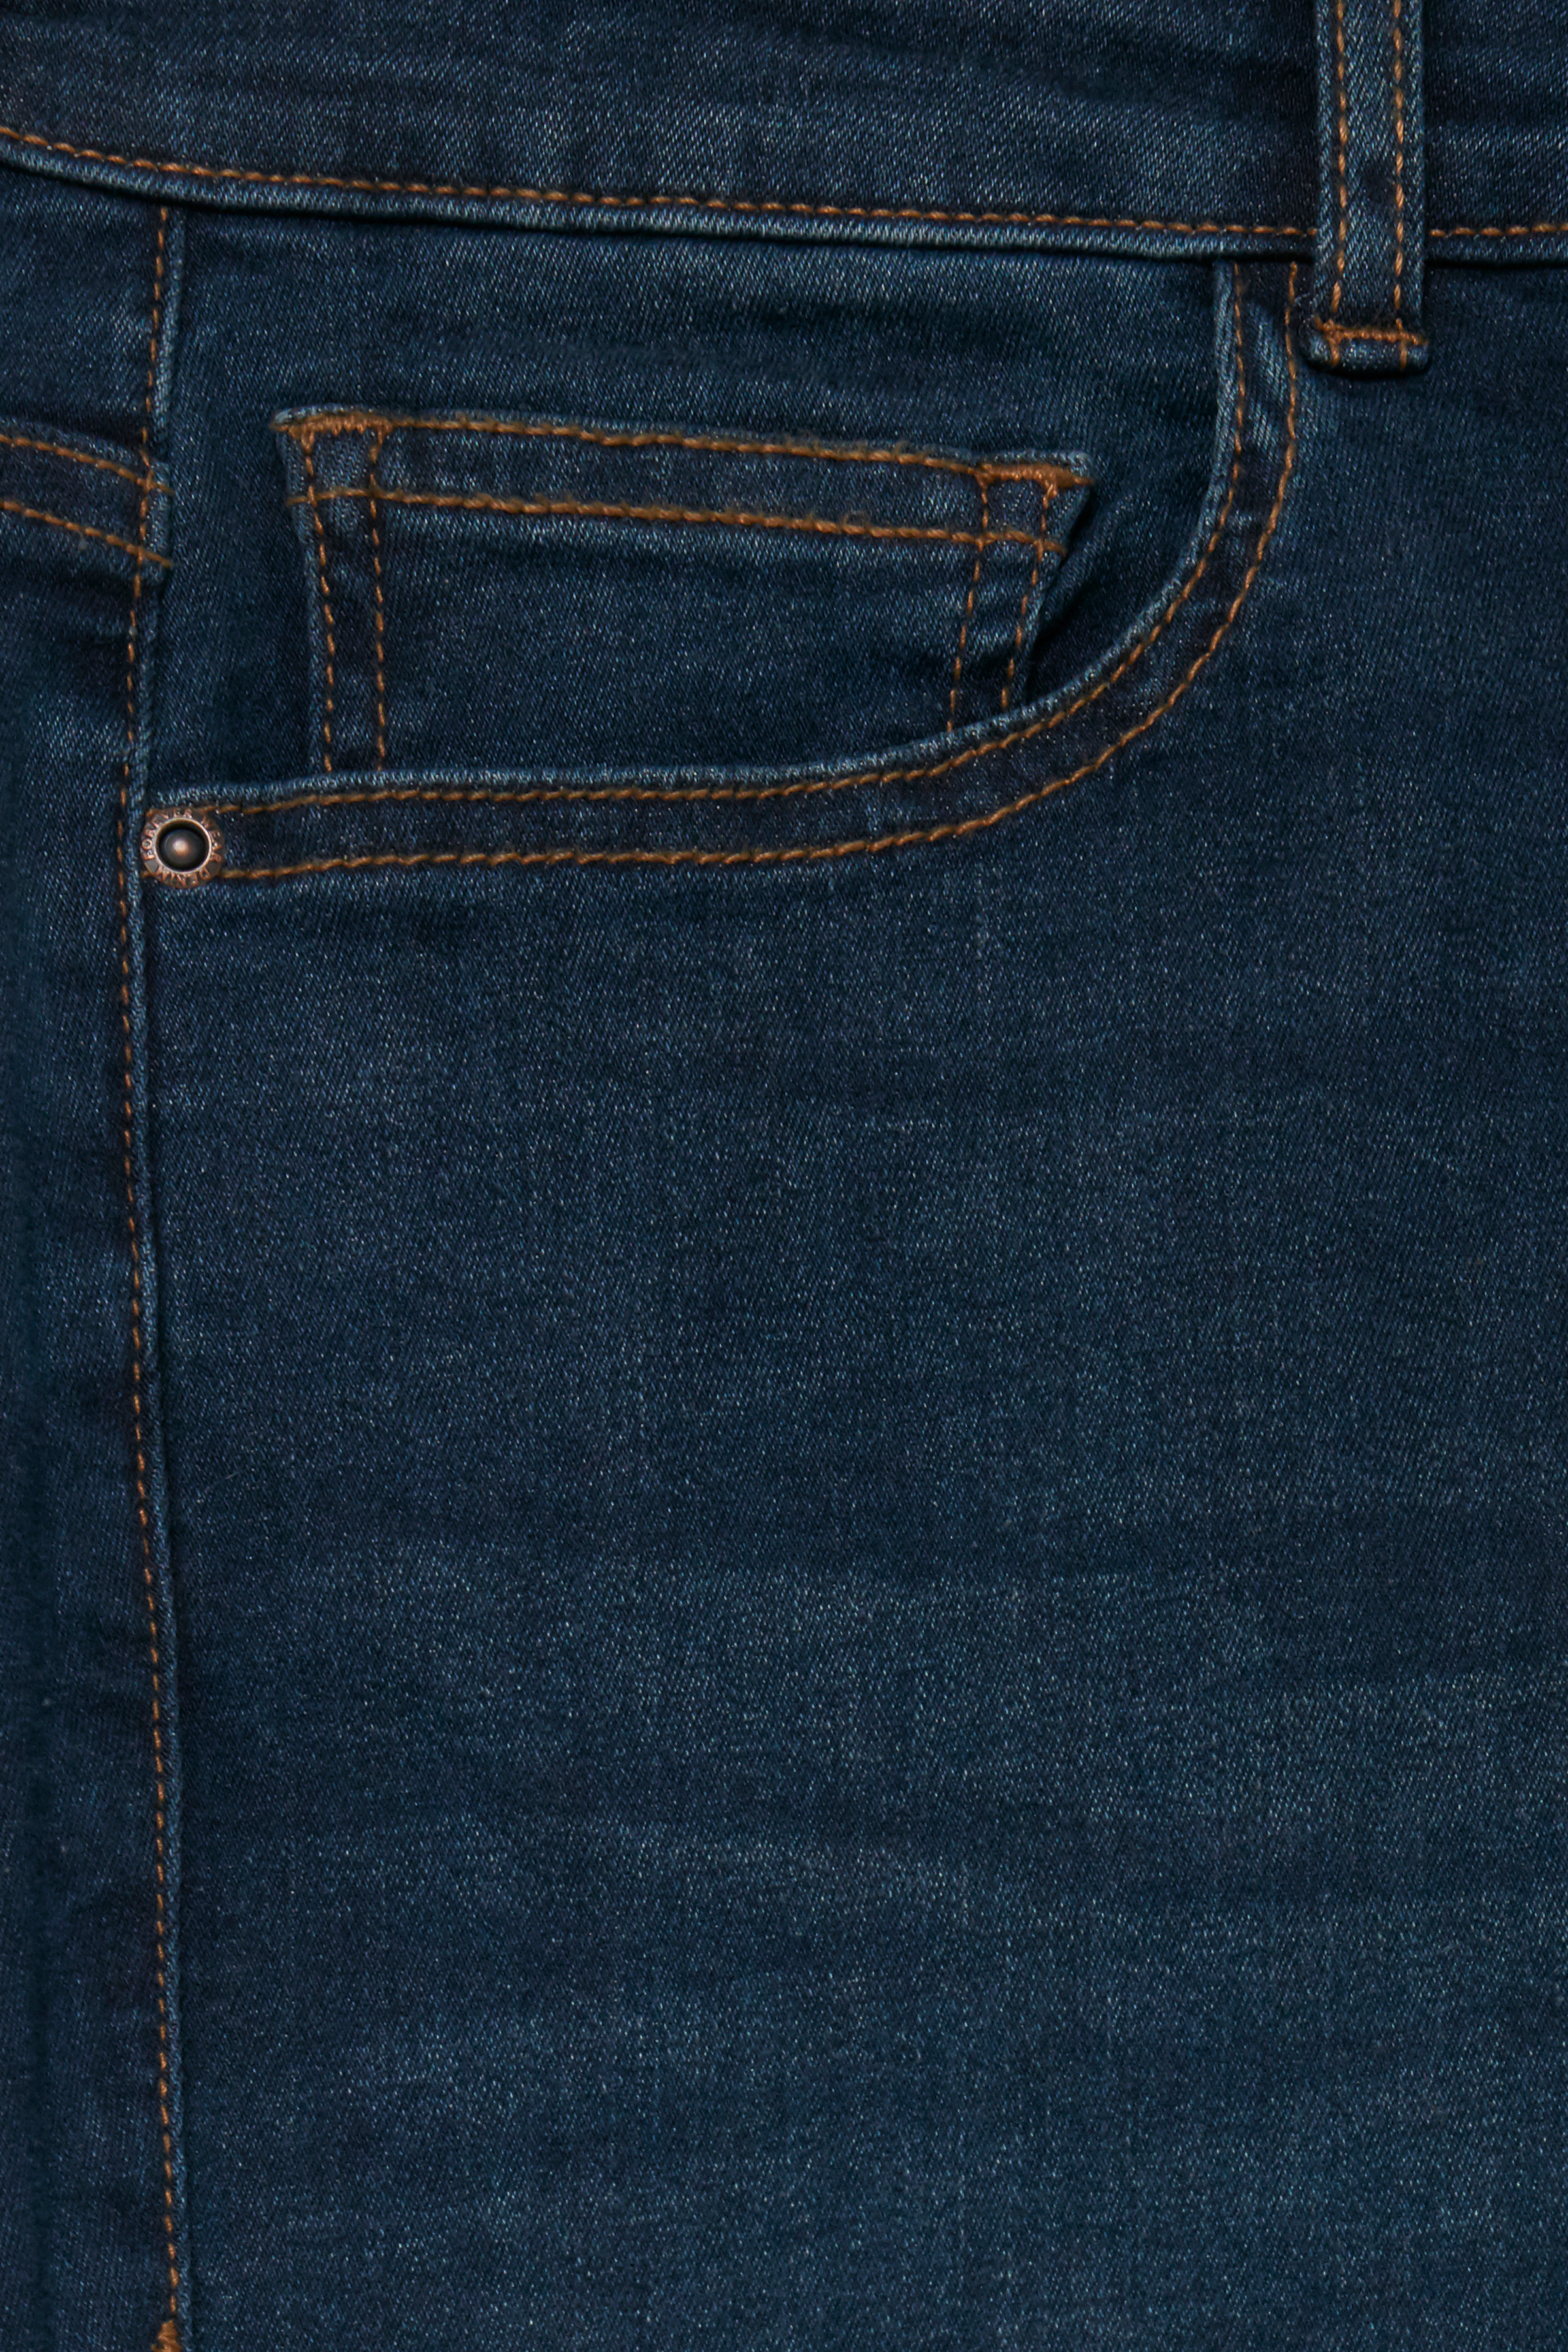 Dark rinse blue Jeans from b.young – Buy Dark rinse blue Jeans from size 26-34 here